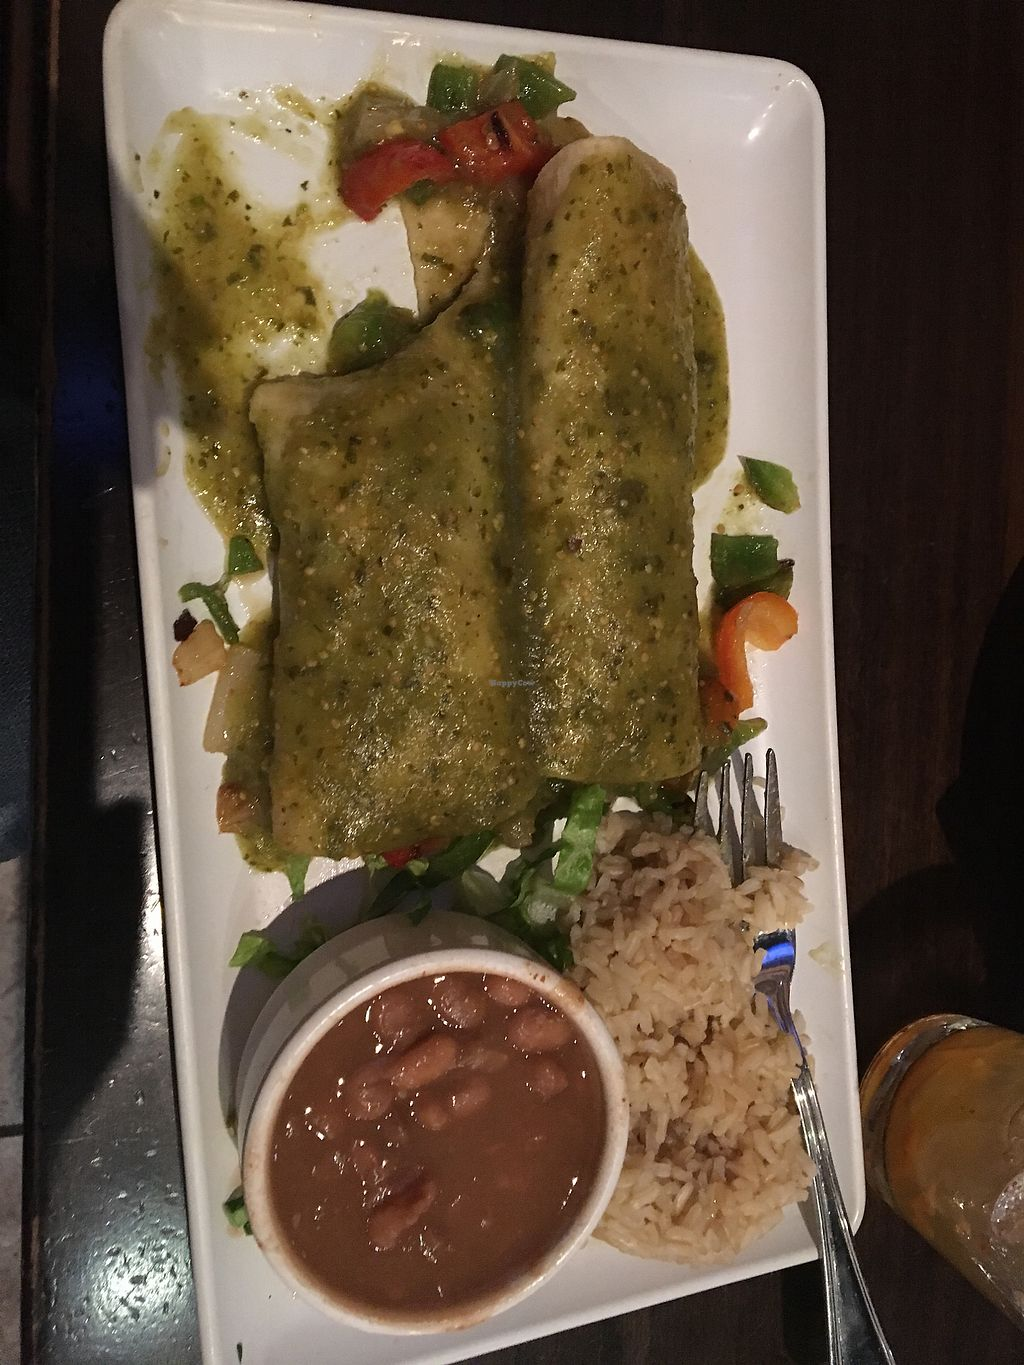 """Photo of Camino Real Kitchen and Tequila  by <a href=""""/members/profile/Brews"""">Brews</a> <br/>Veggie Enchiladas made vegan <br/> December 31, 2017  - <a href='/contact/abuse/image/60663/341178'>Report</a>"""